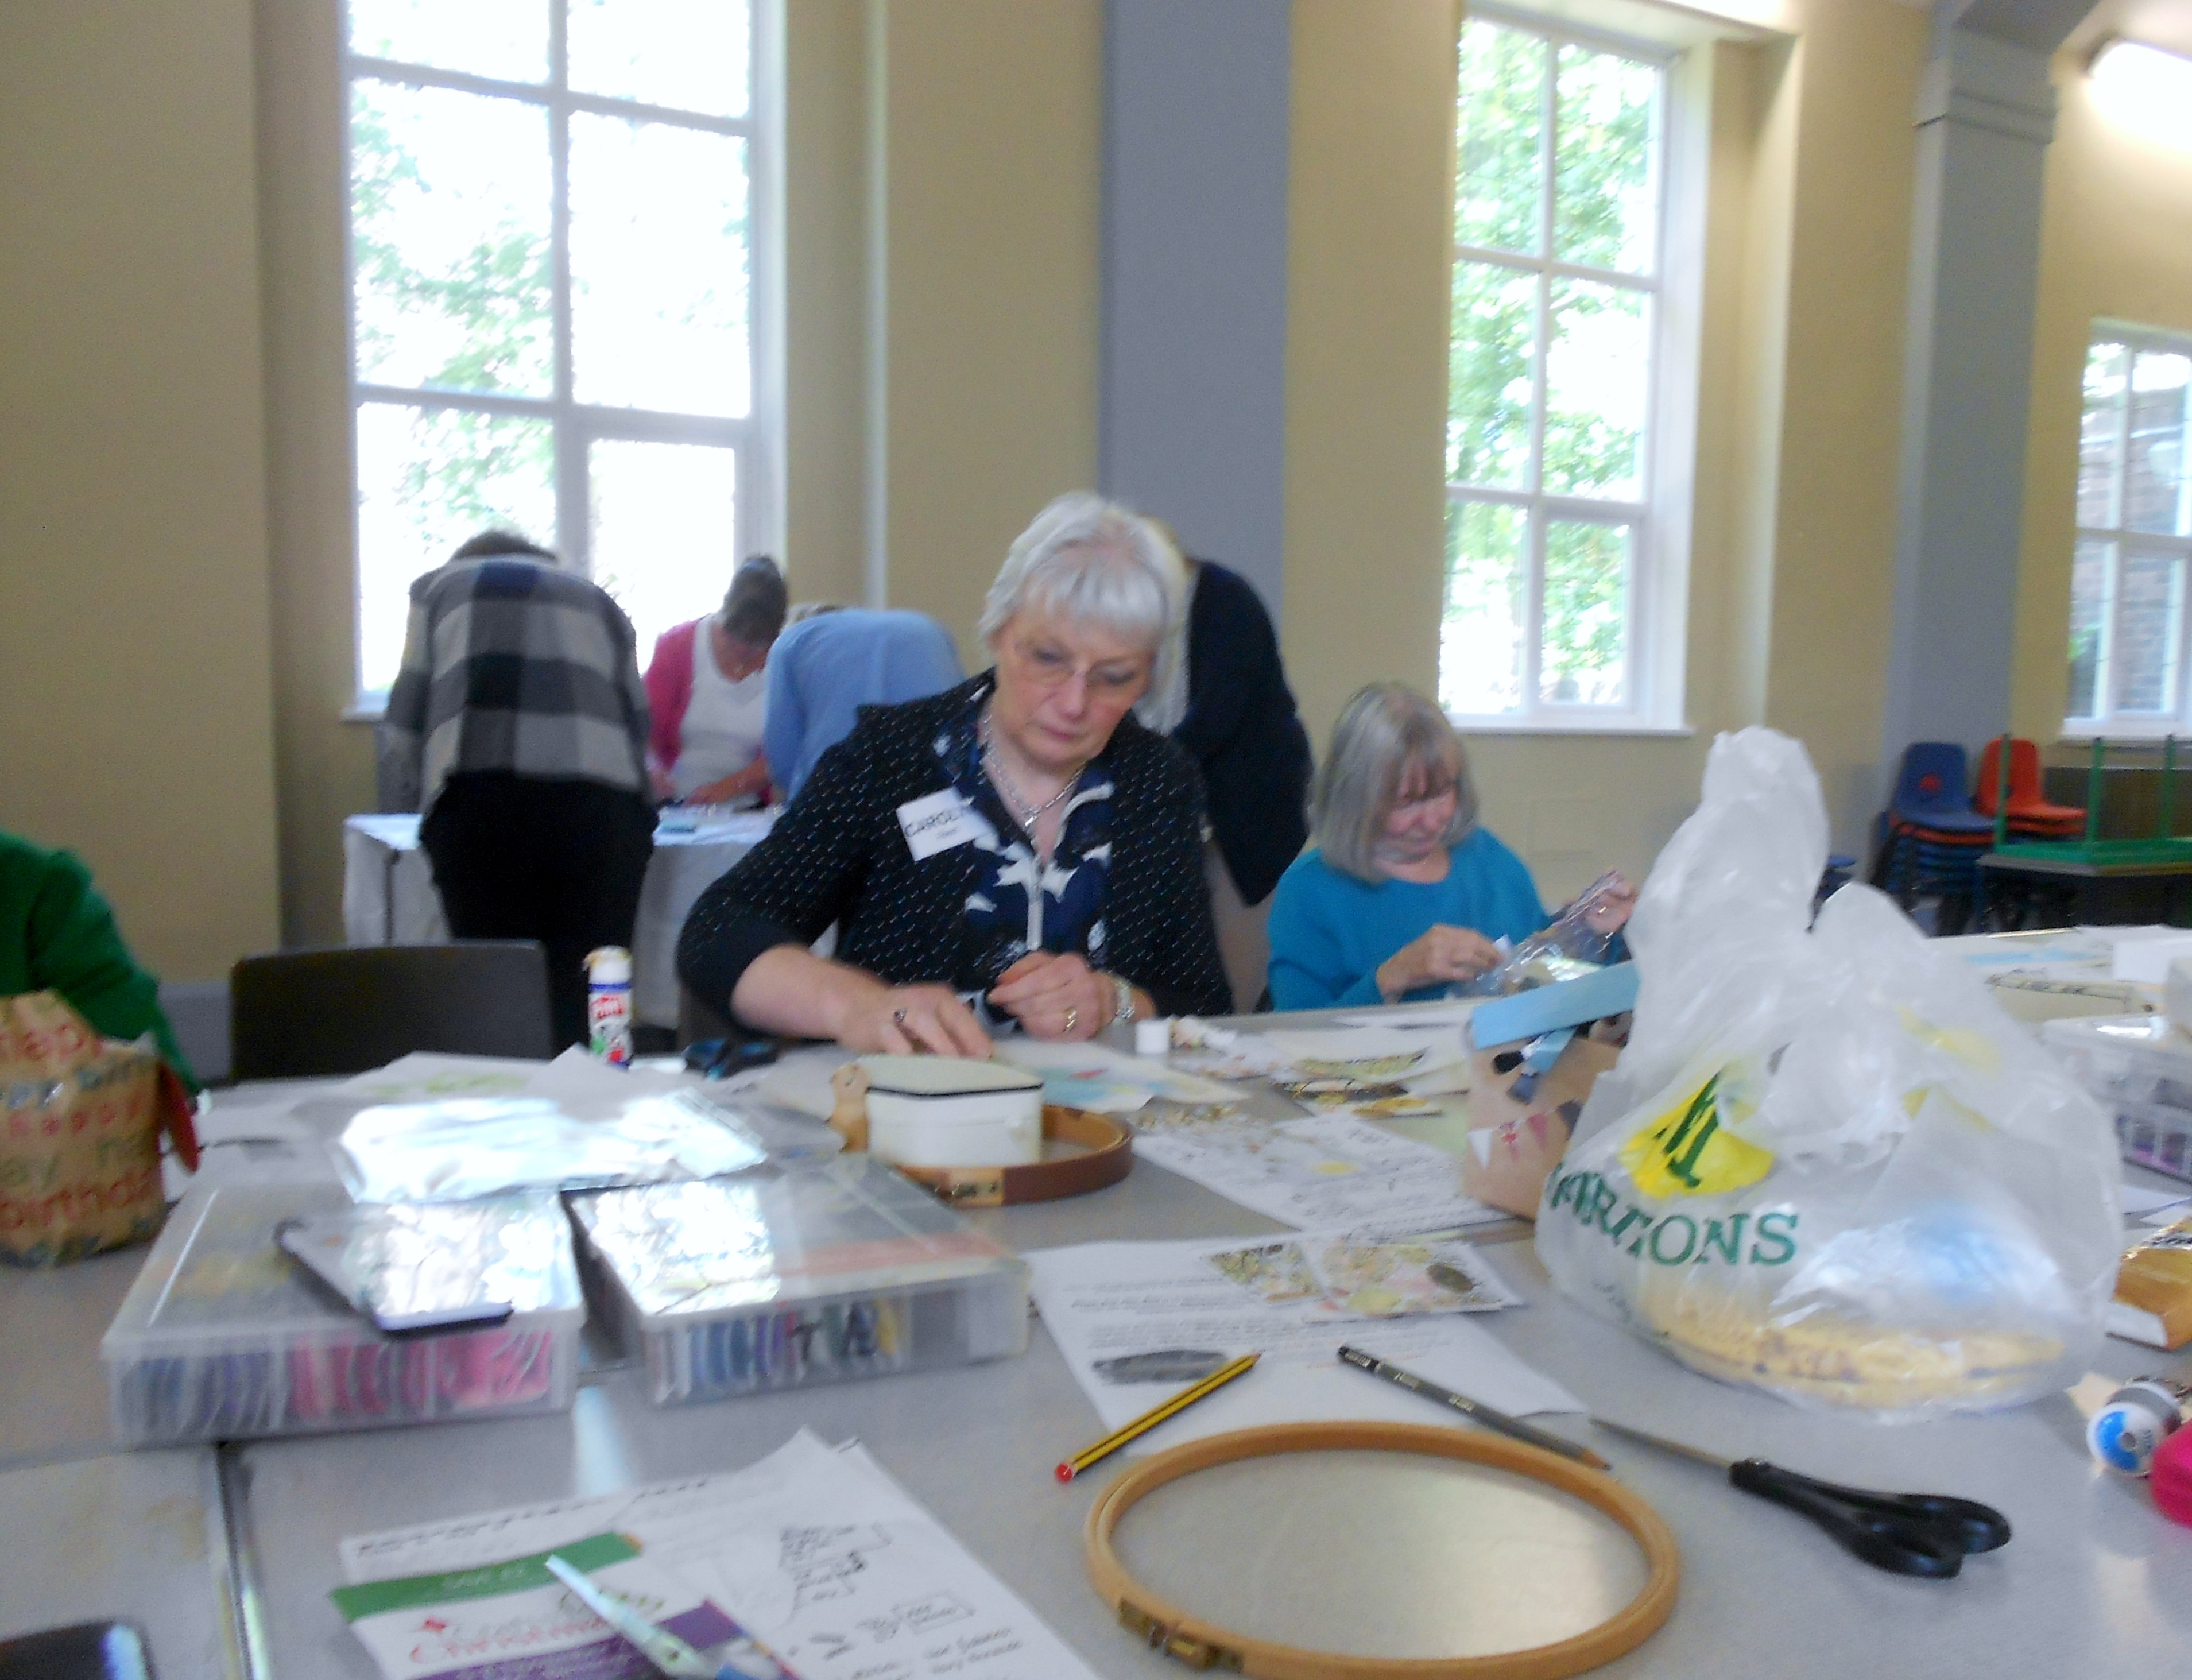 August 2015 WORKSHOP with Janet Vance